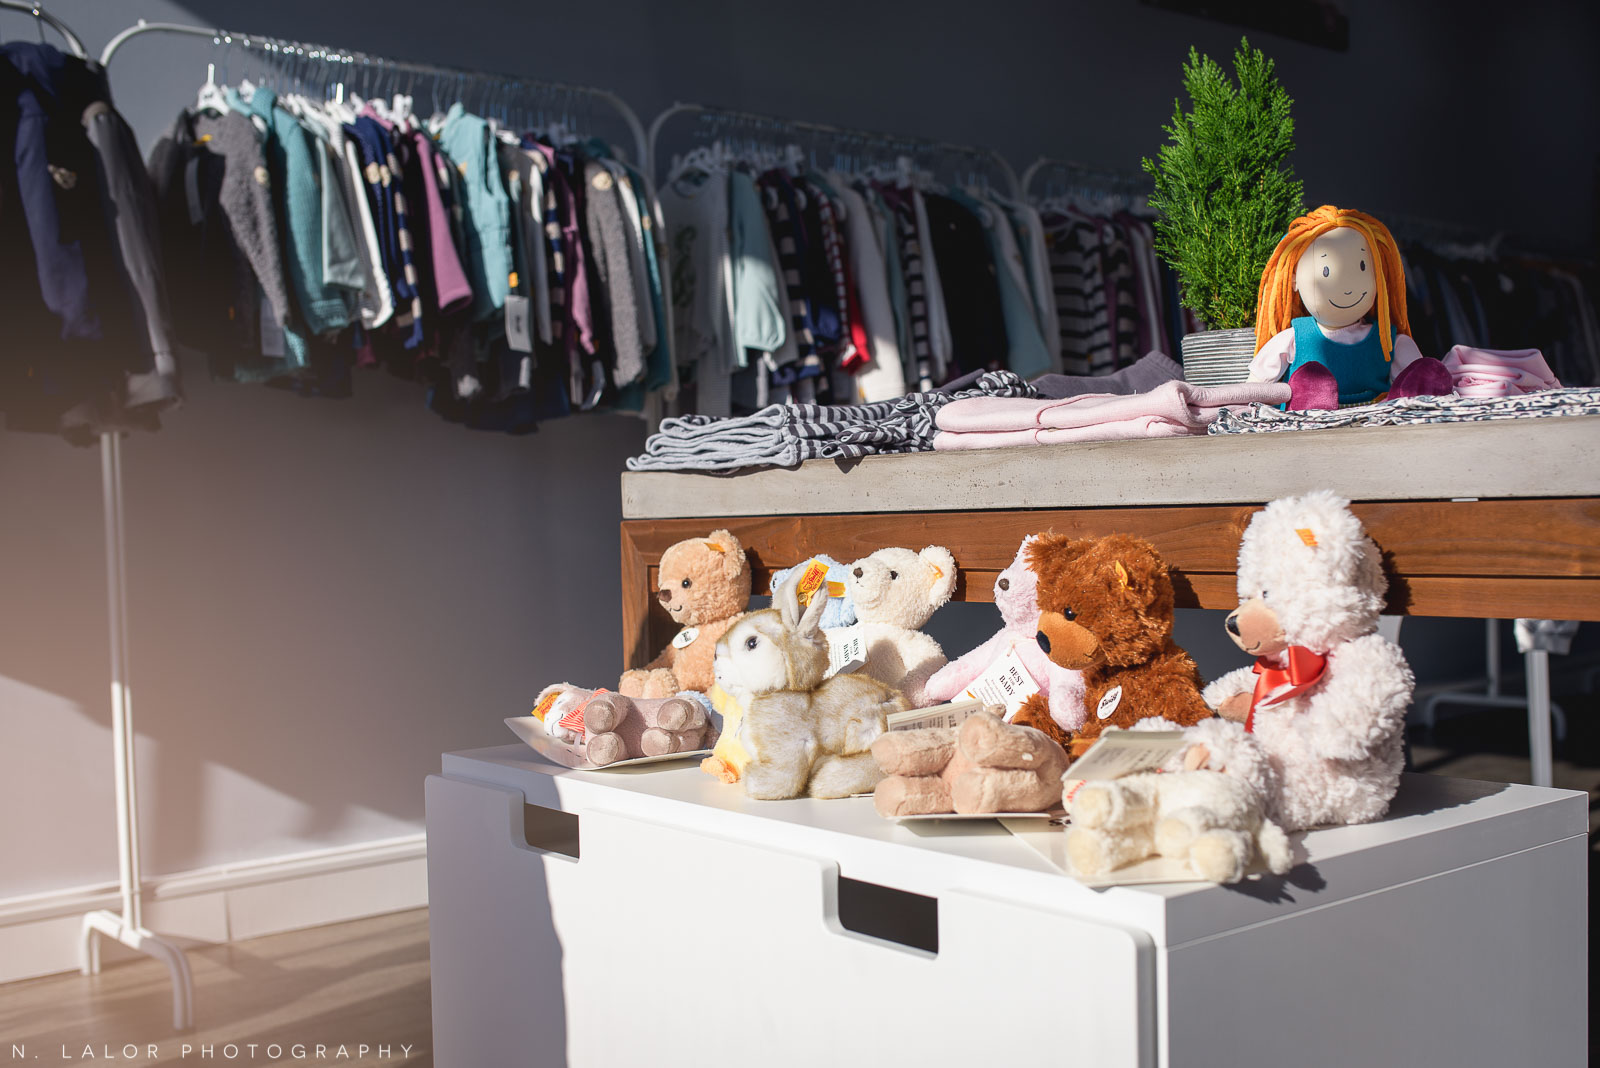 Stuffed teddy bears by Steiff and kids clothing at Ella & Henry in New Canaan, CT. Photo by N. Lalor Photography.